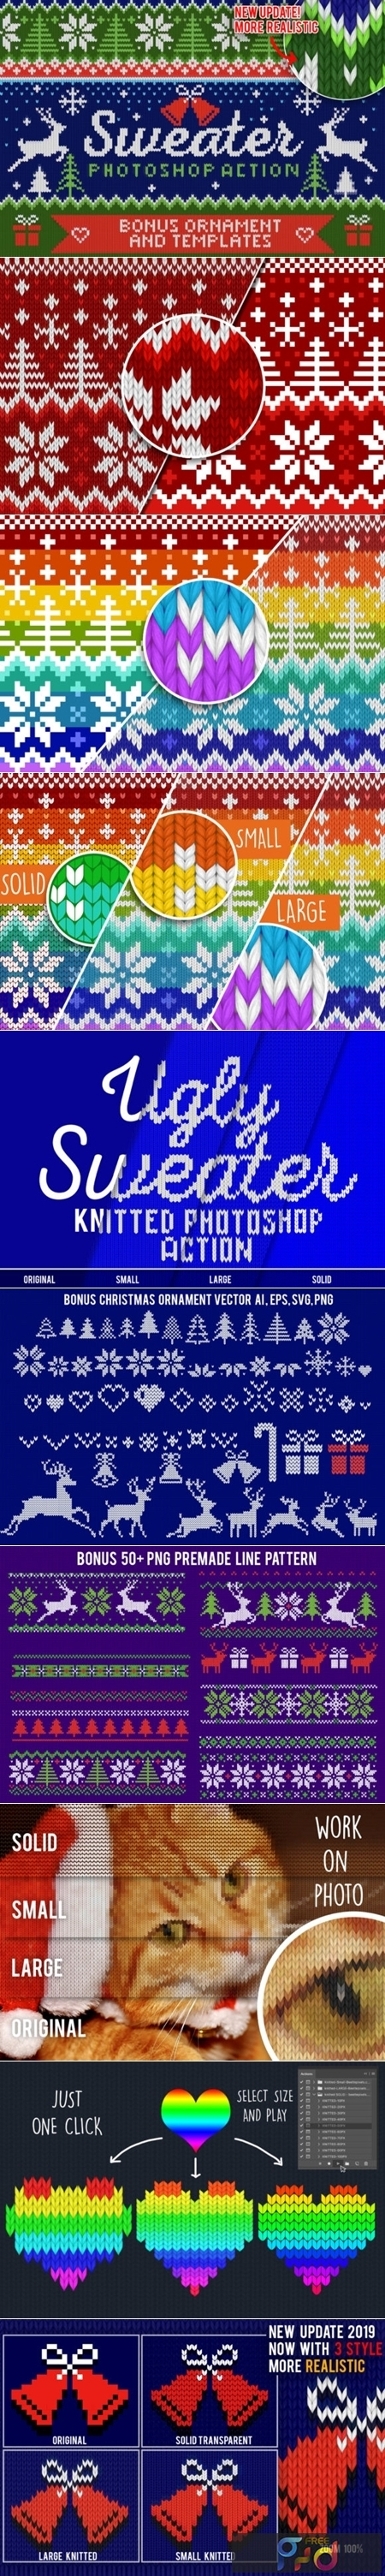 Knitted Effect Ugly Christmas Sweater 1949306 1